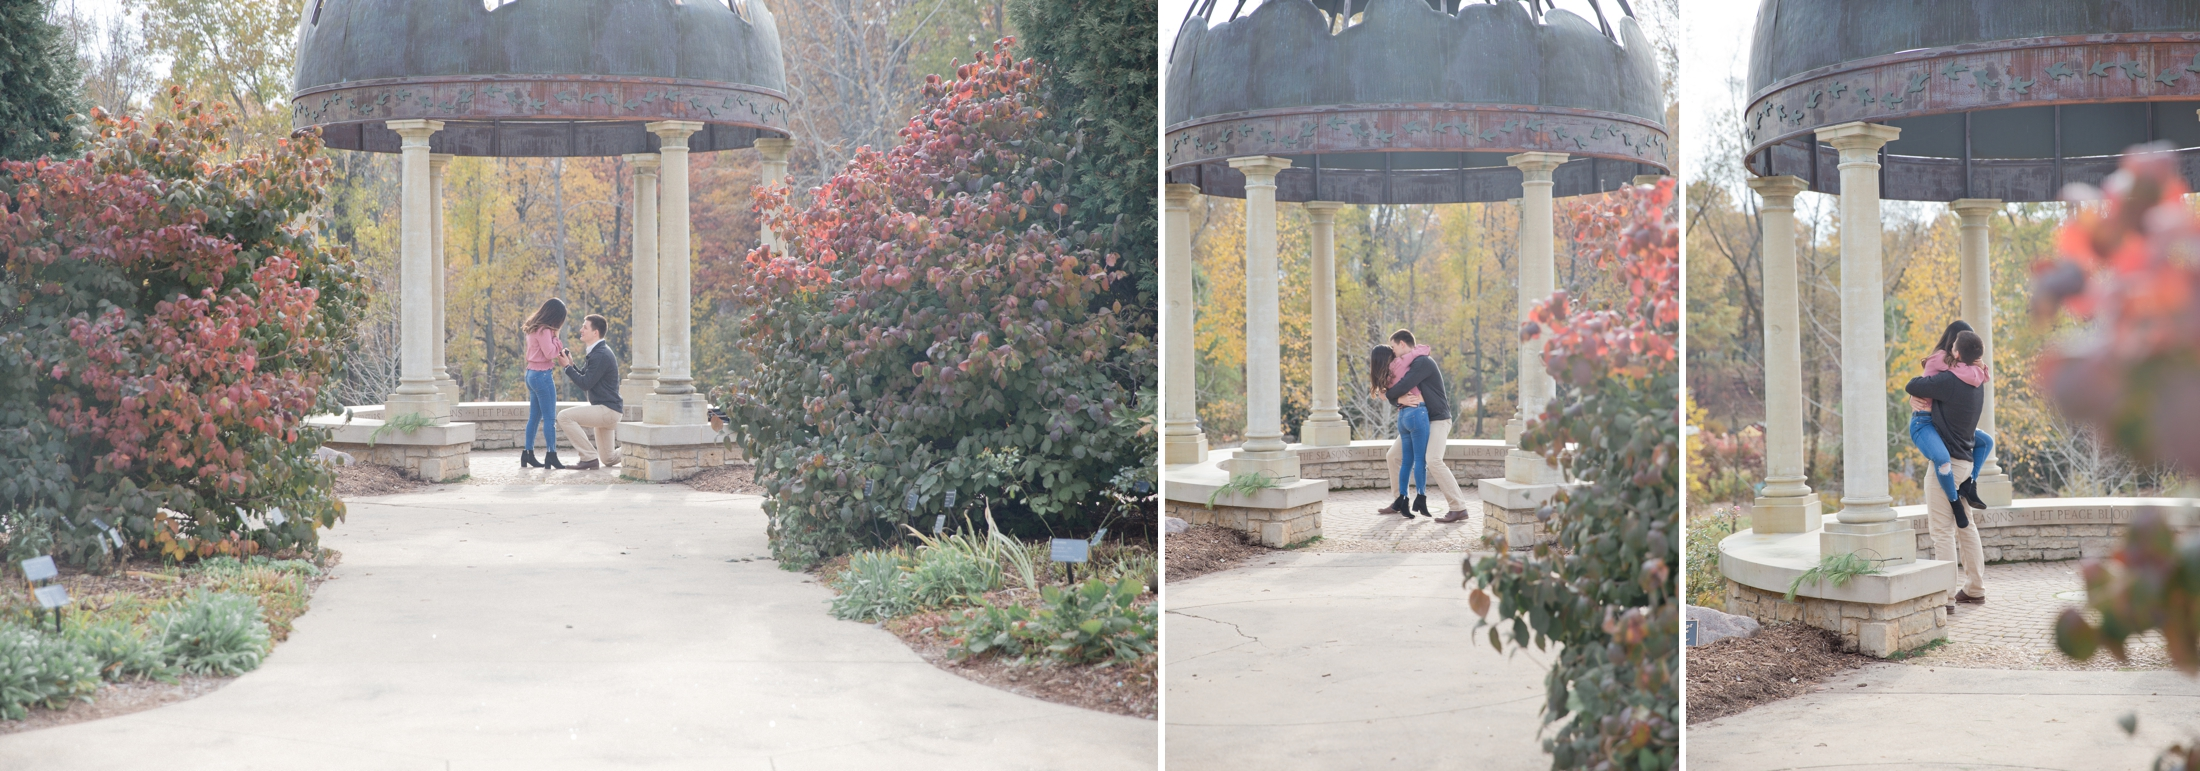 Wisconsin wedding photographer, Green Bay Botanical Gardens Proposal, Engagement Photos